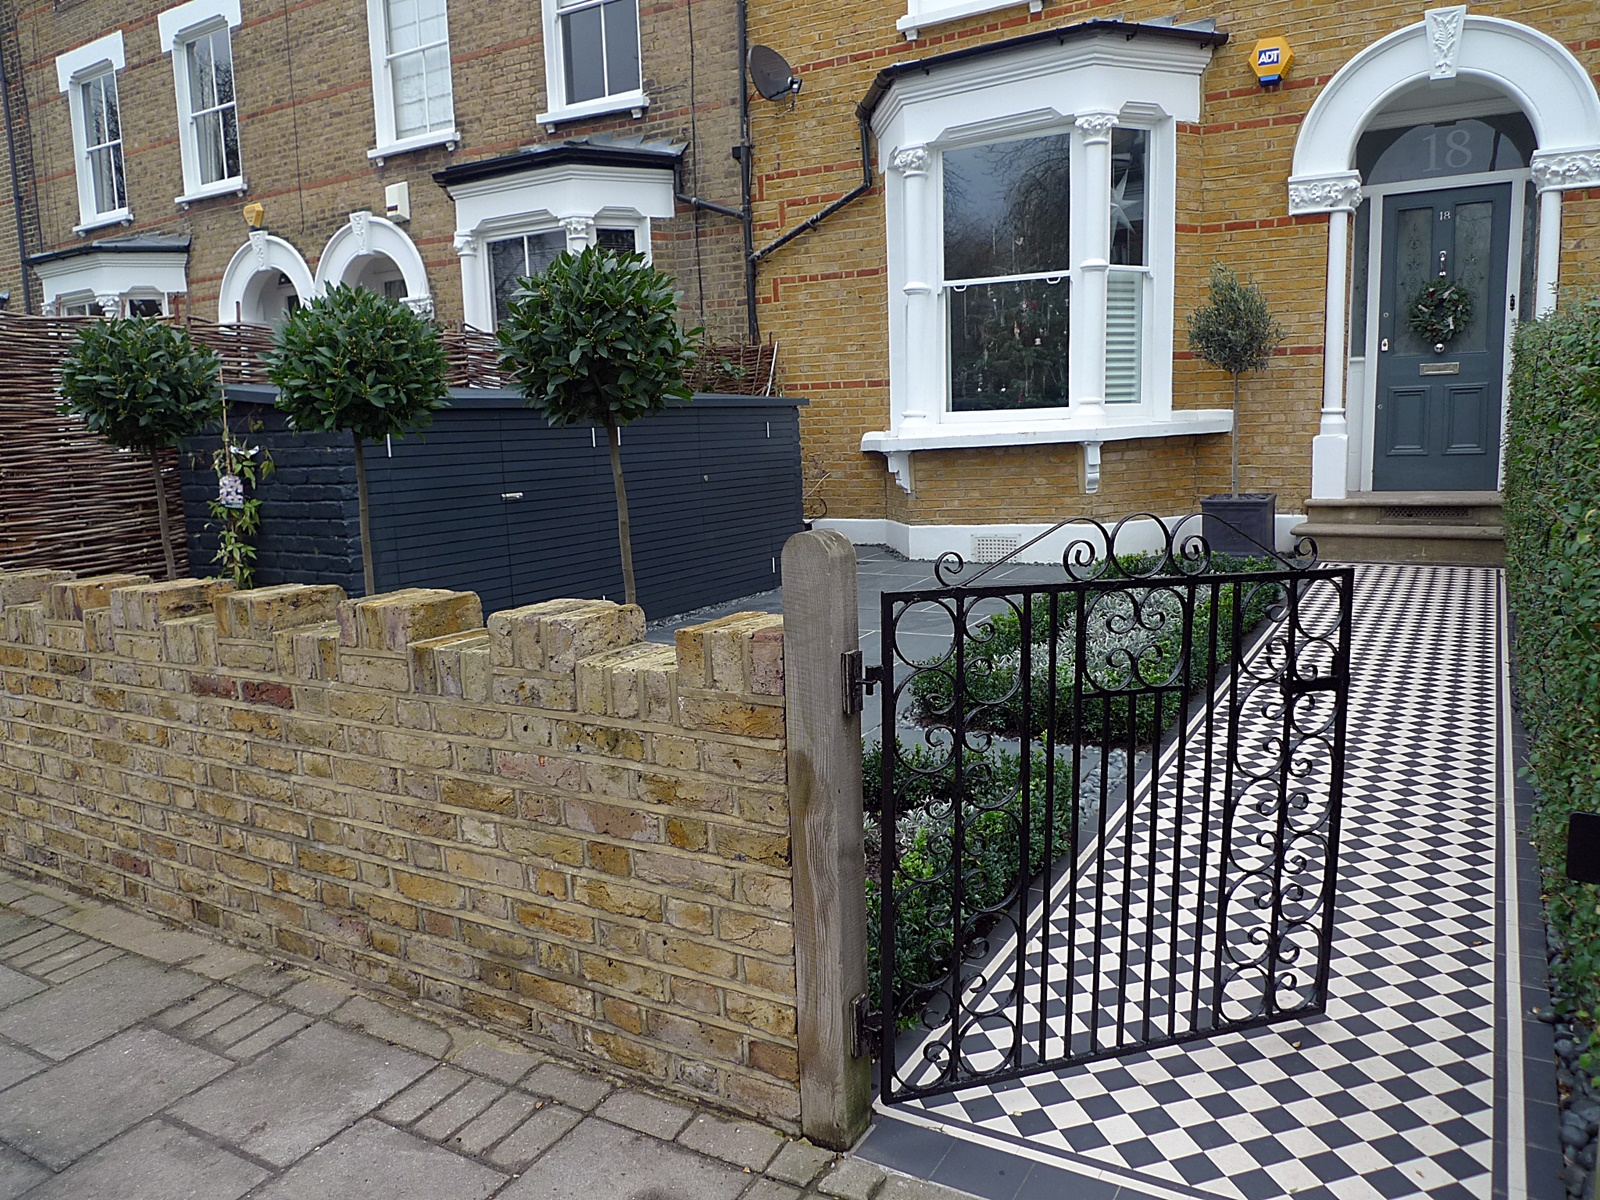 London garden blog london garden blog gardens from for Victorian garden walls designs